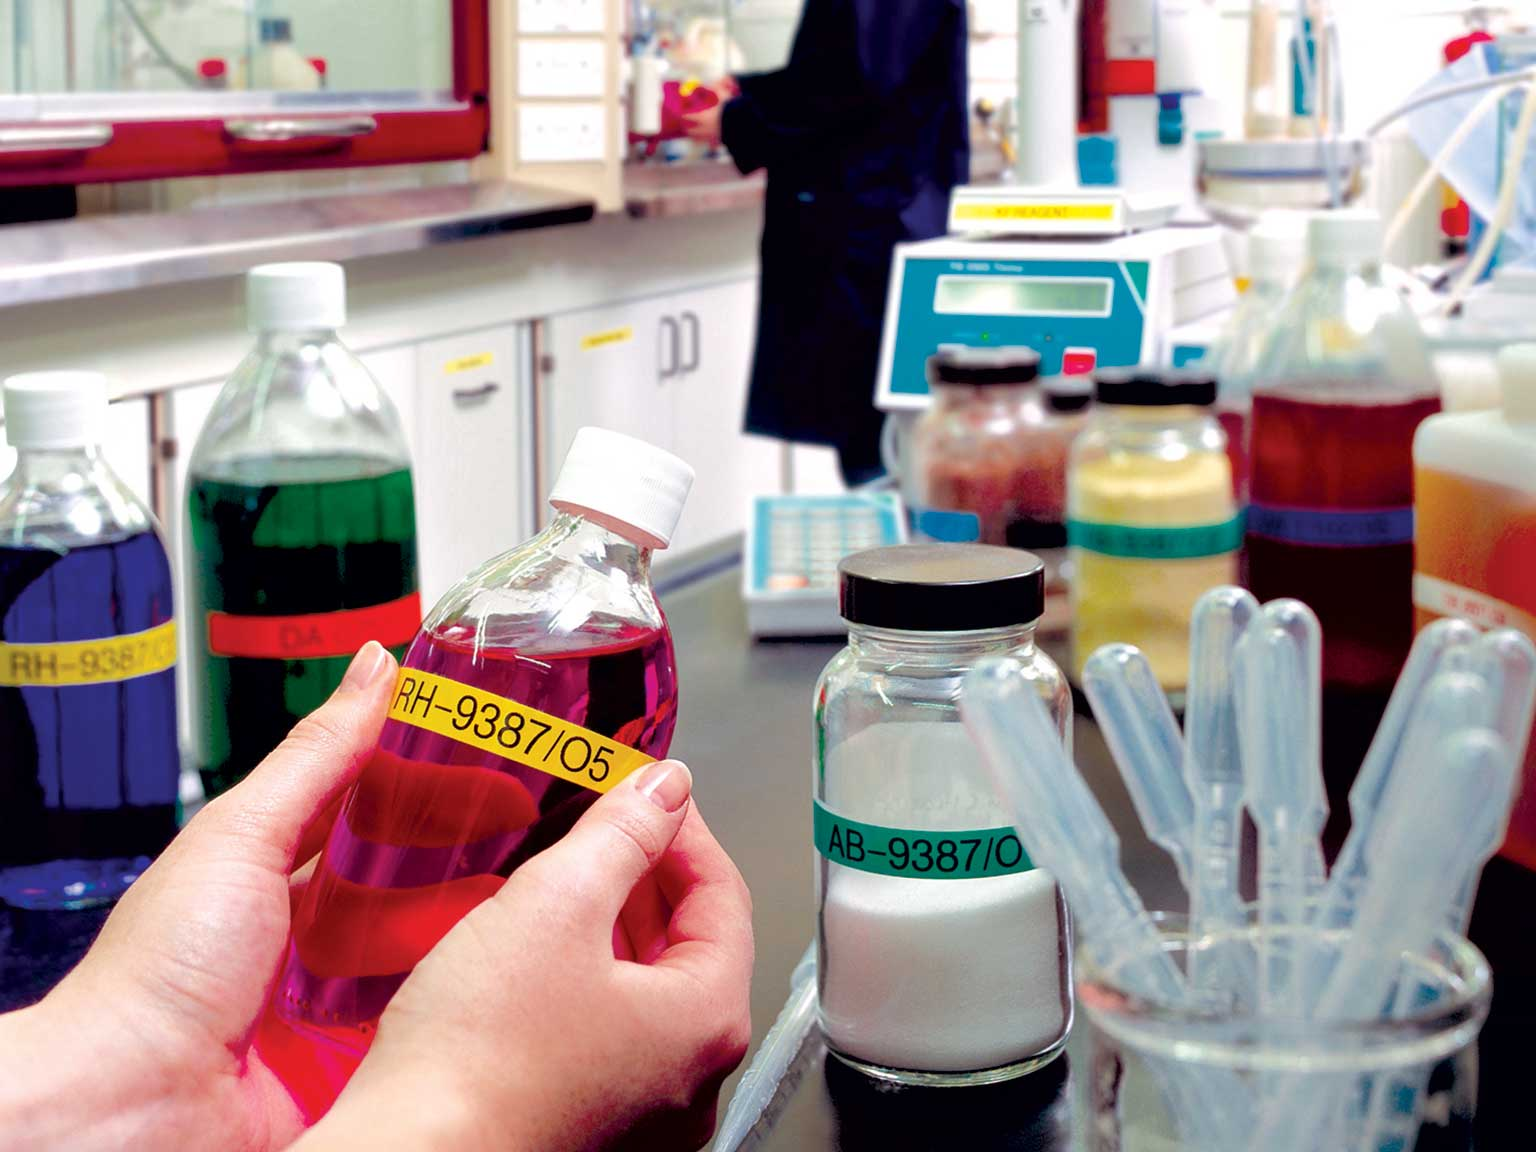 Brother P-touch laminated TZe labels on various chemicals in a laboratory